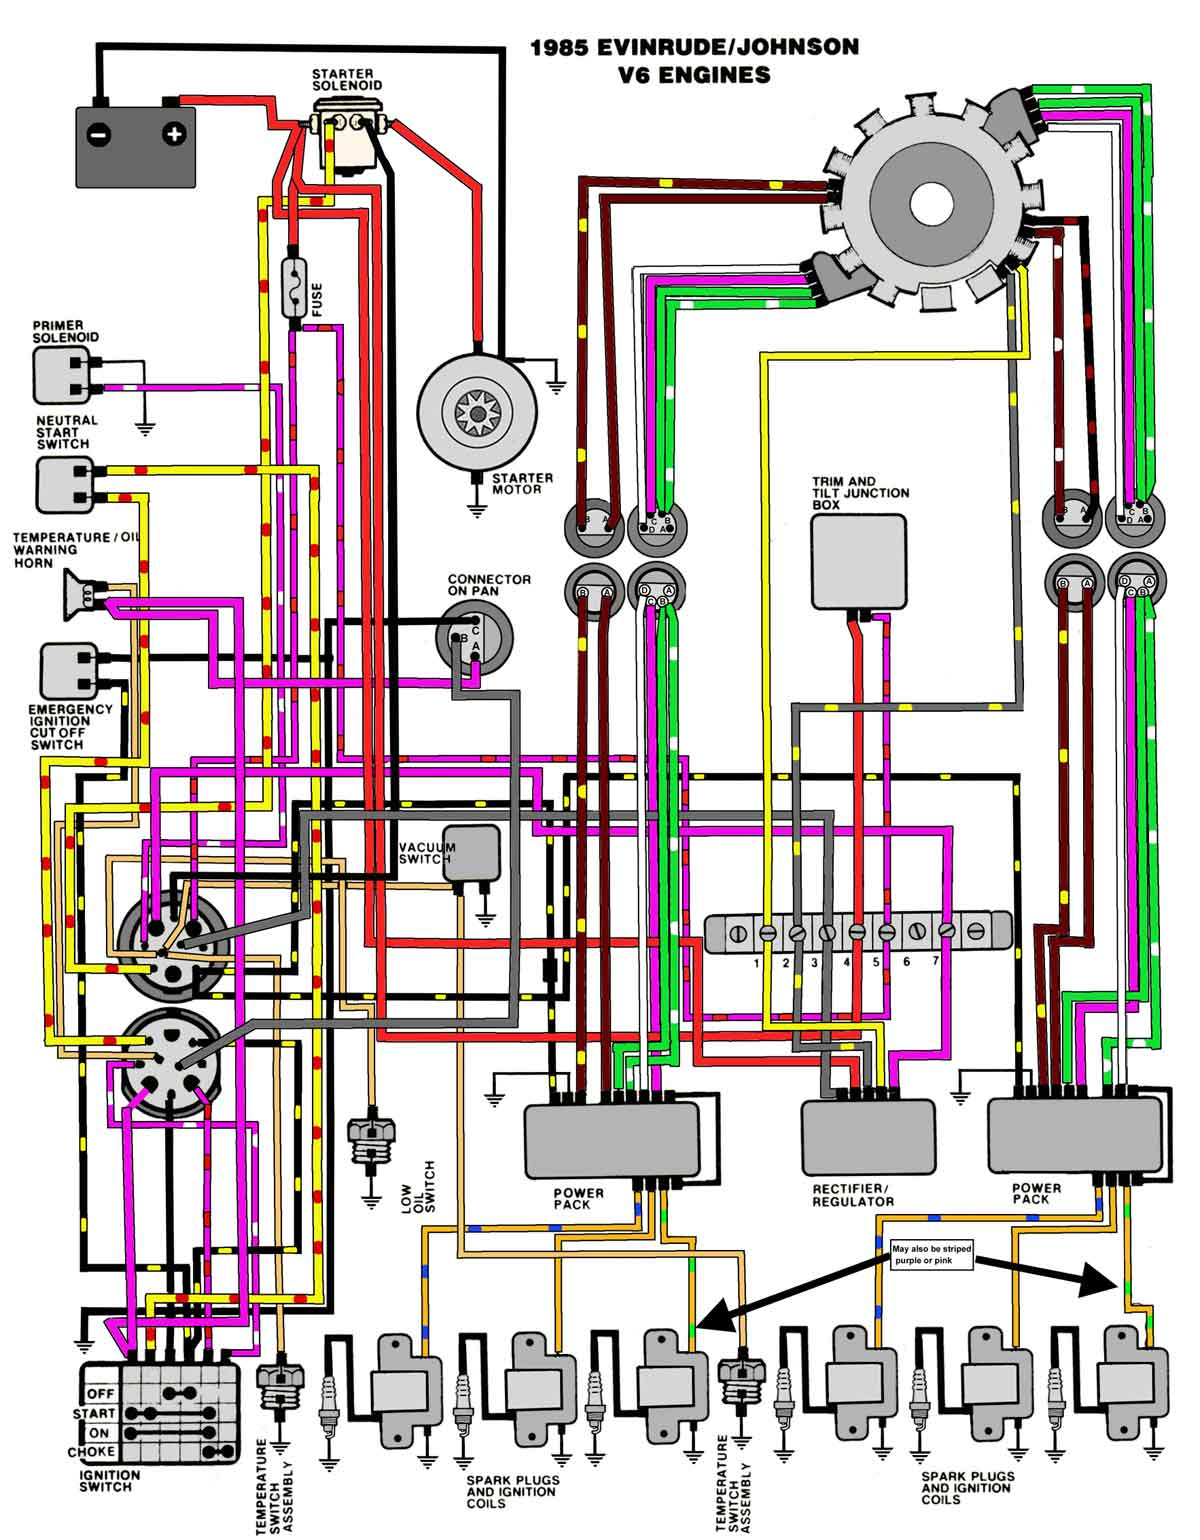 85_V6 mastertech marine evinrude johnson outboard wiring diagrams wiring diagram for johnson outboard motor at mifinder.co